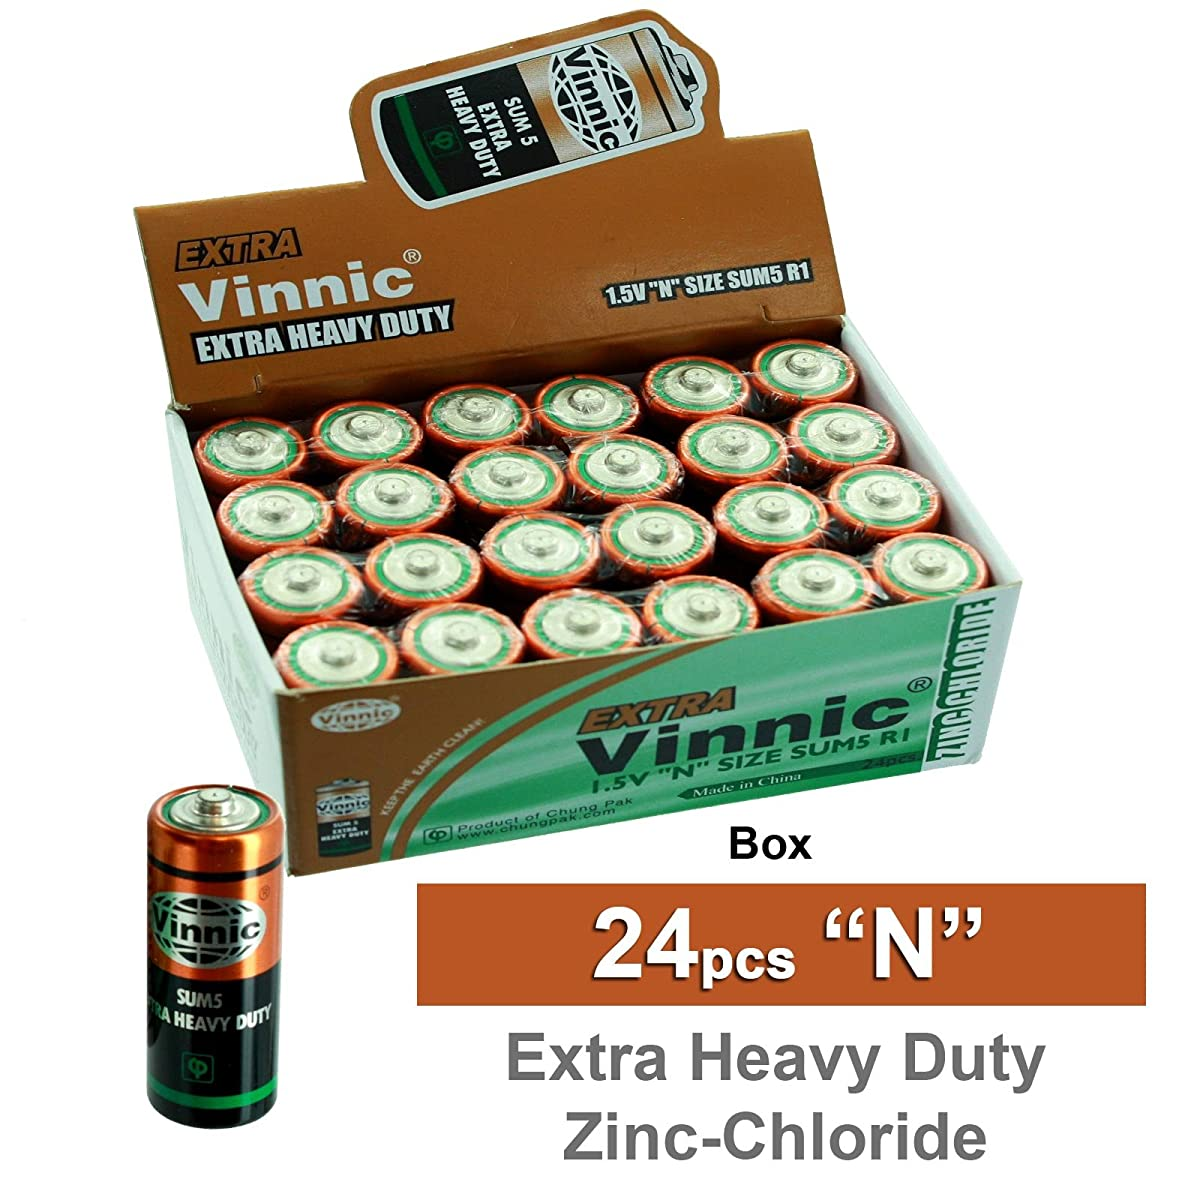 24pc VINNIC ER1NMSG N Size Extra Heavy Duty Eco Green Batteries Replaces 4001, 810, 910A, A910, AM5, E90, E90BP/2, KN, KN-1, KN-2, Lady, LR-N, LR01, LR1, MN9100, N, PC9100, UM5, VLR1